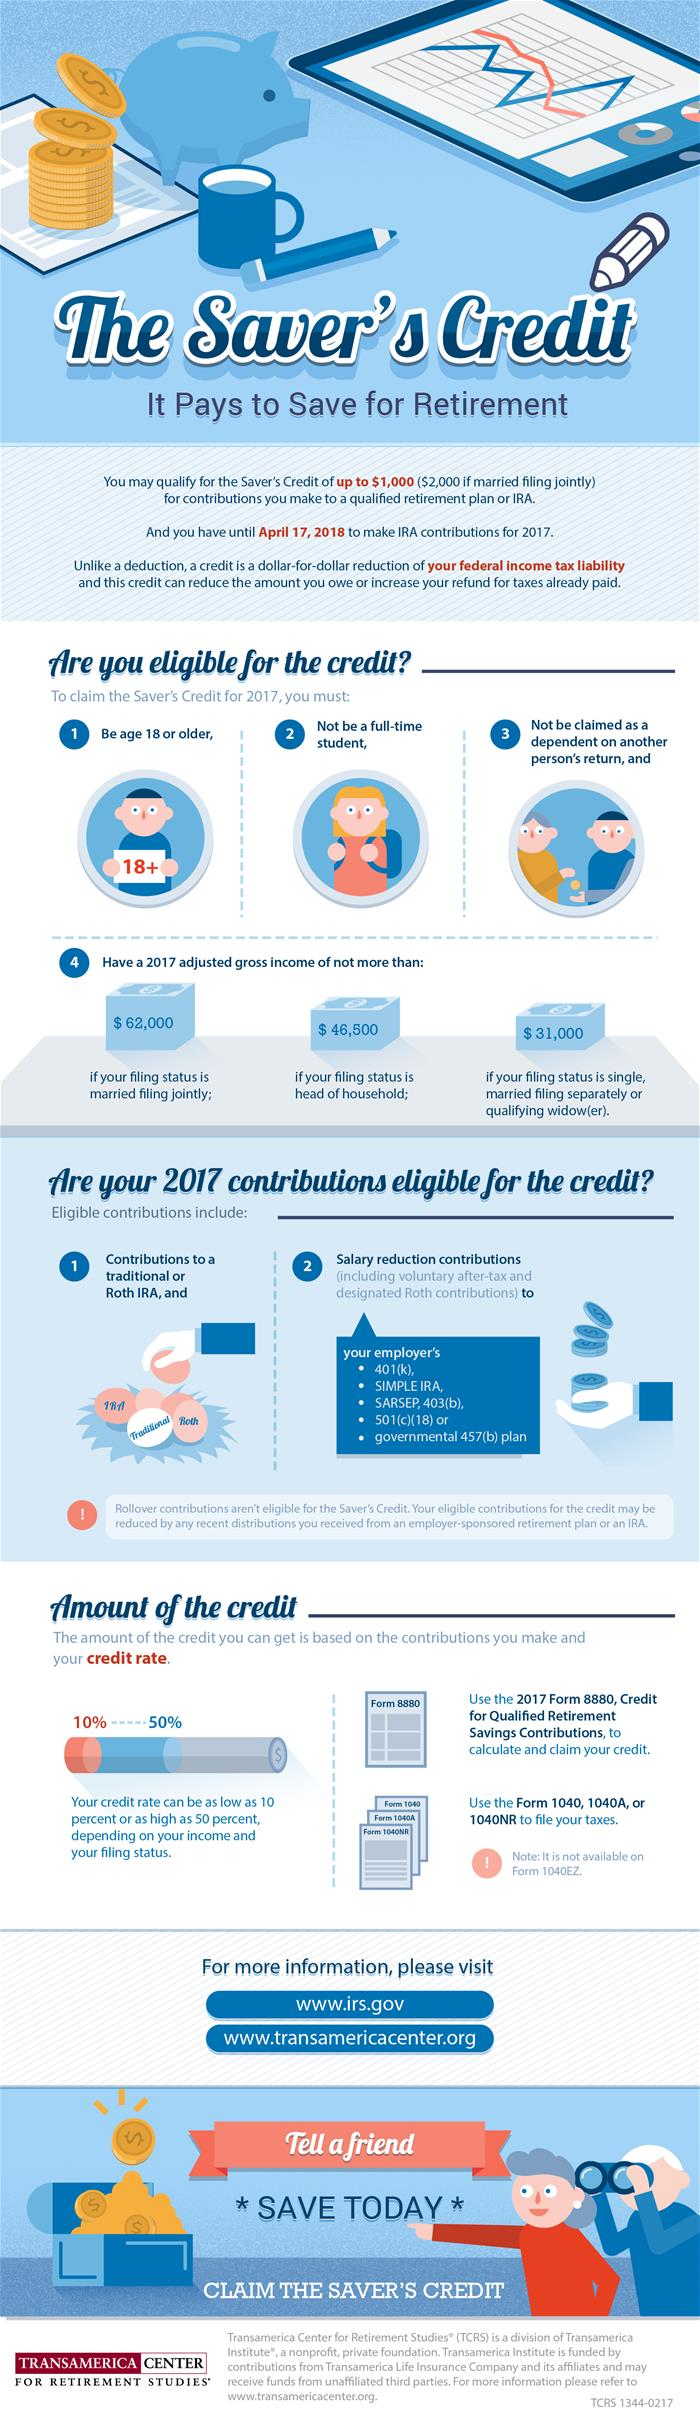 Savers Credit 2017 Infographic